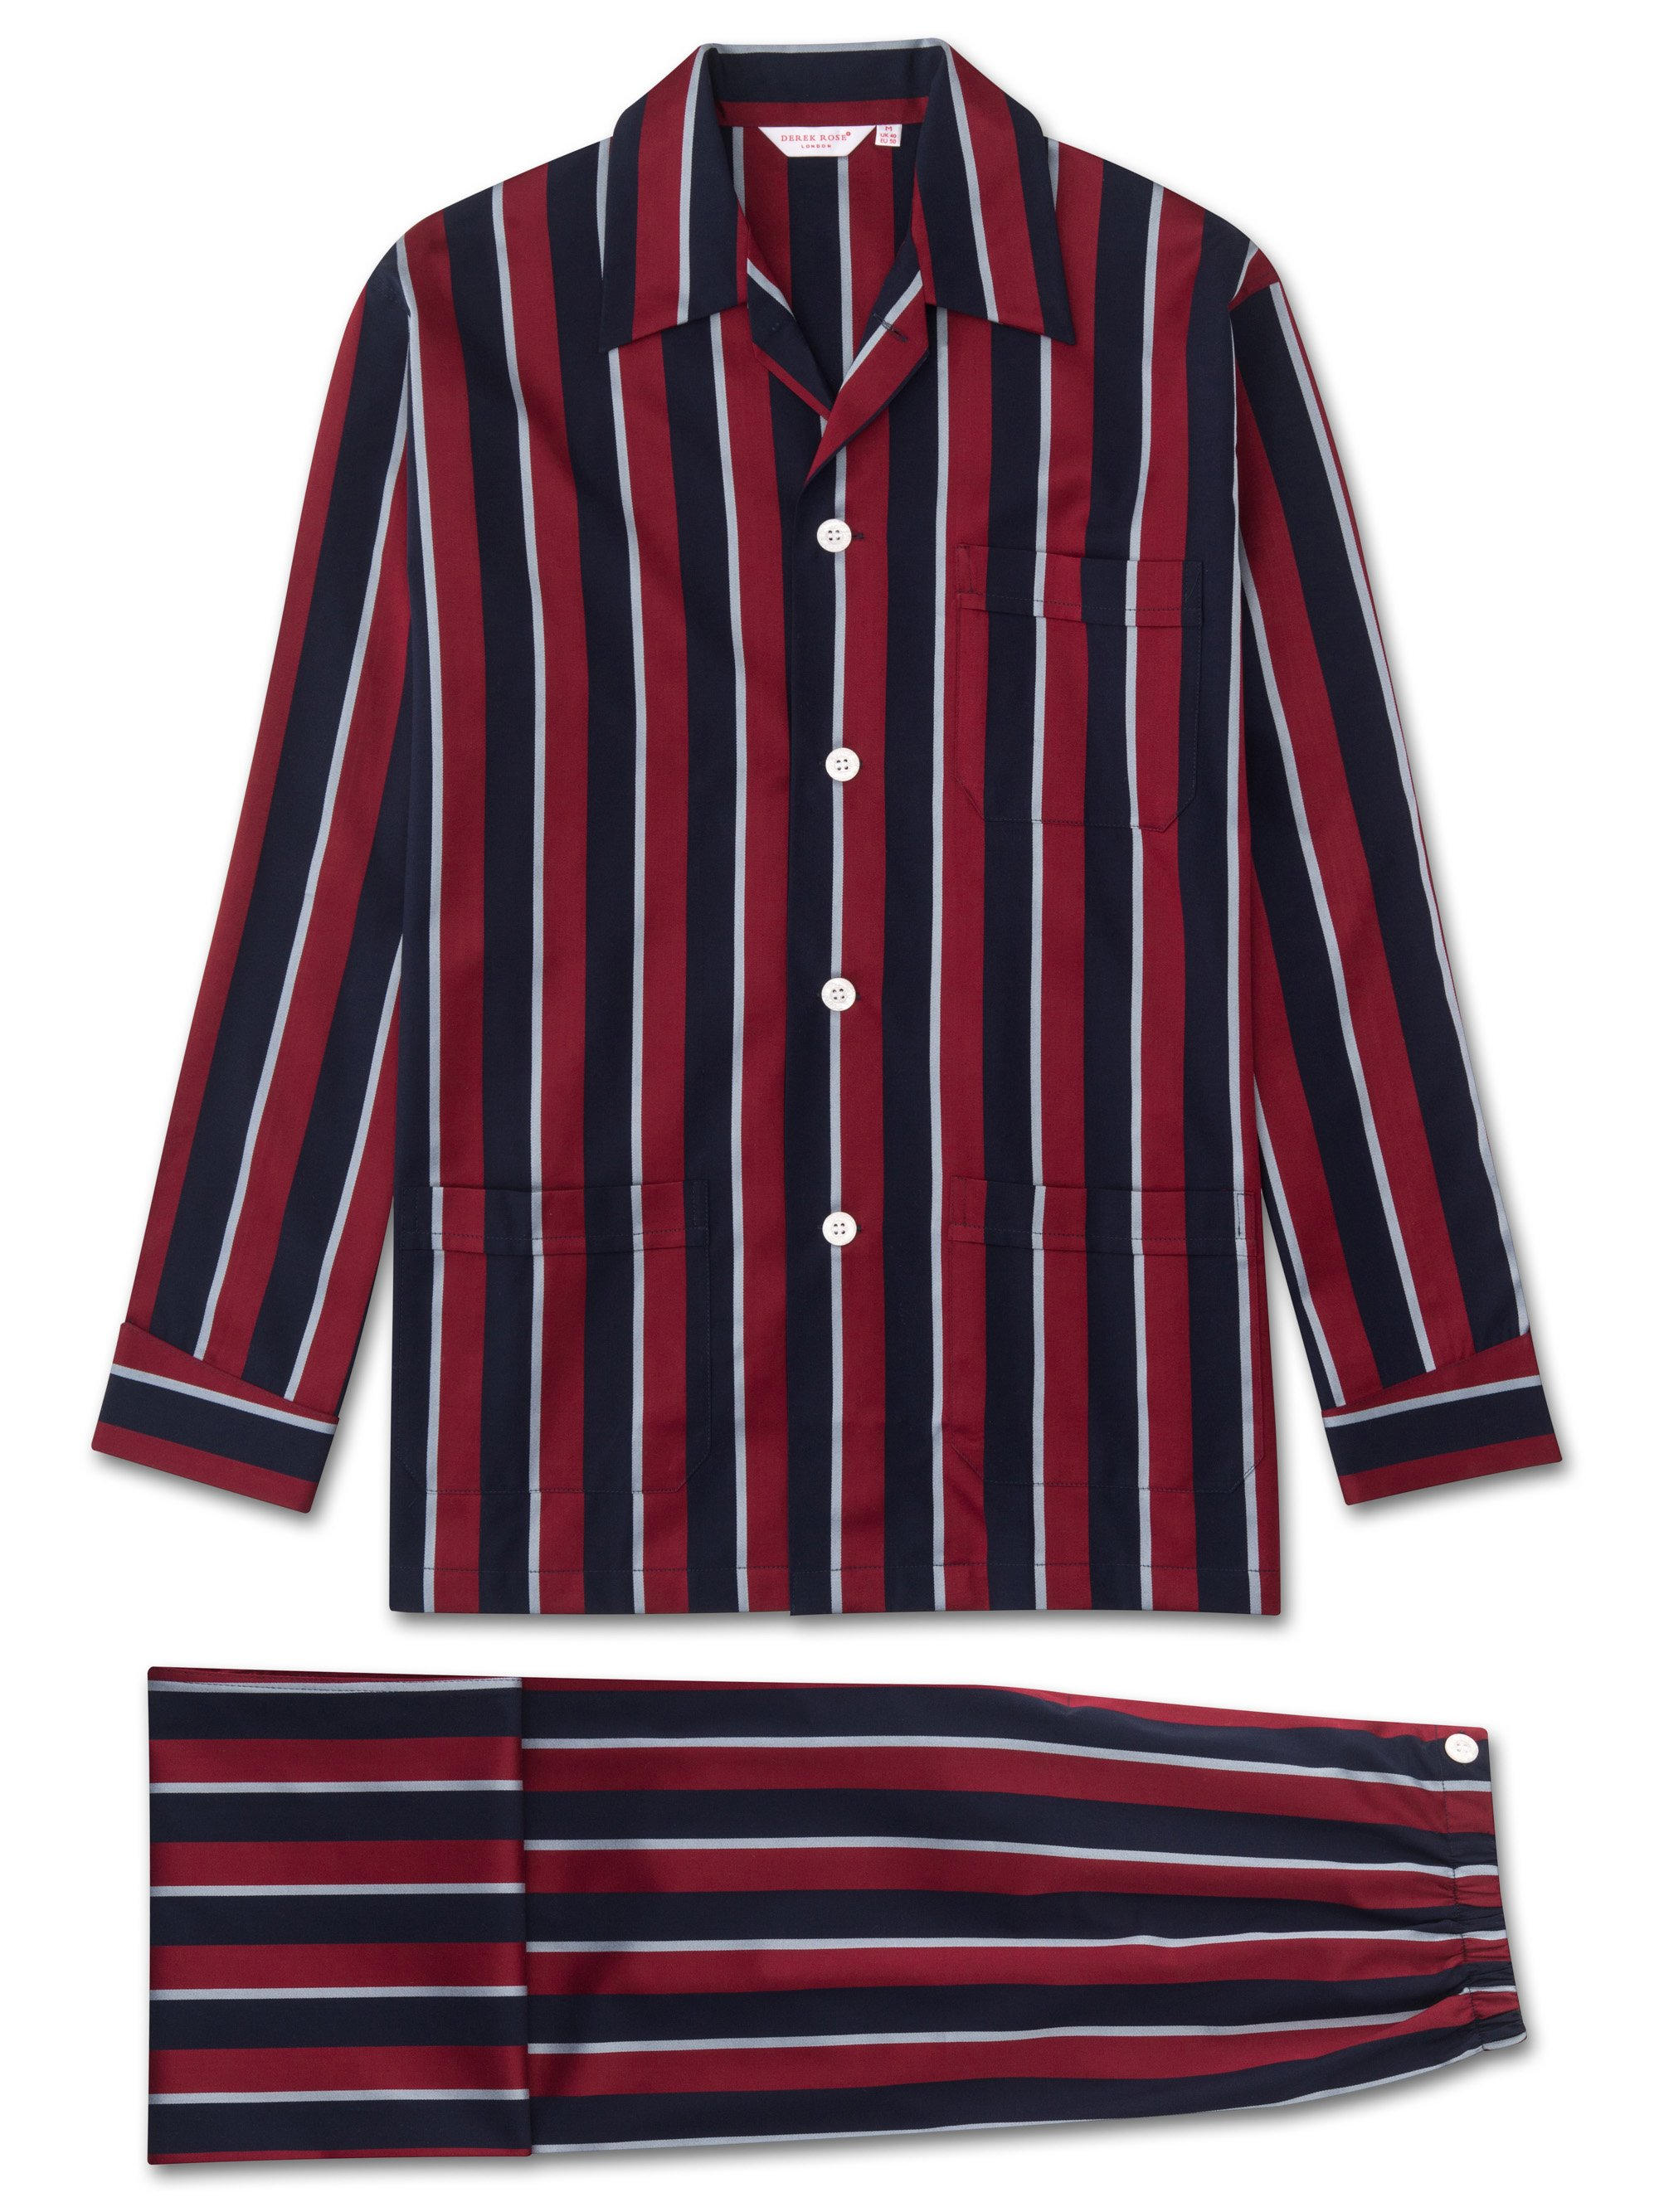 Men's pyjamas with regimental RAF stripe